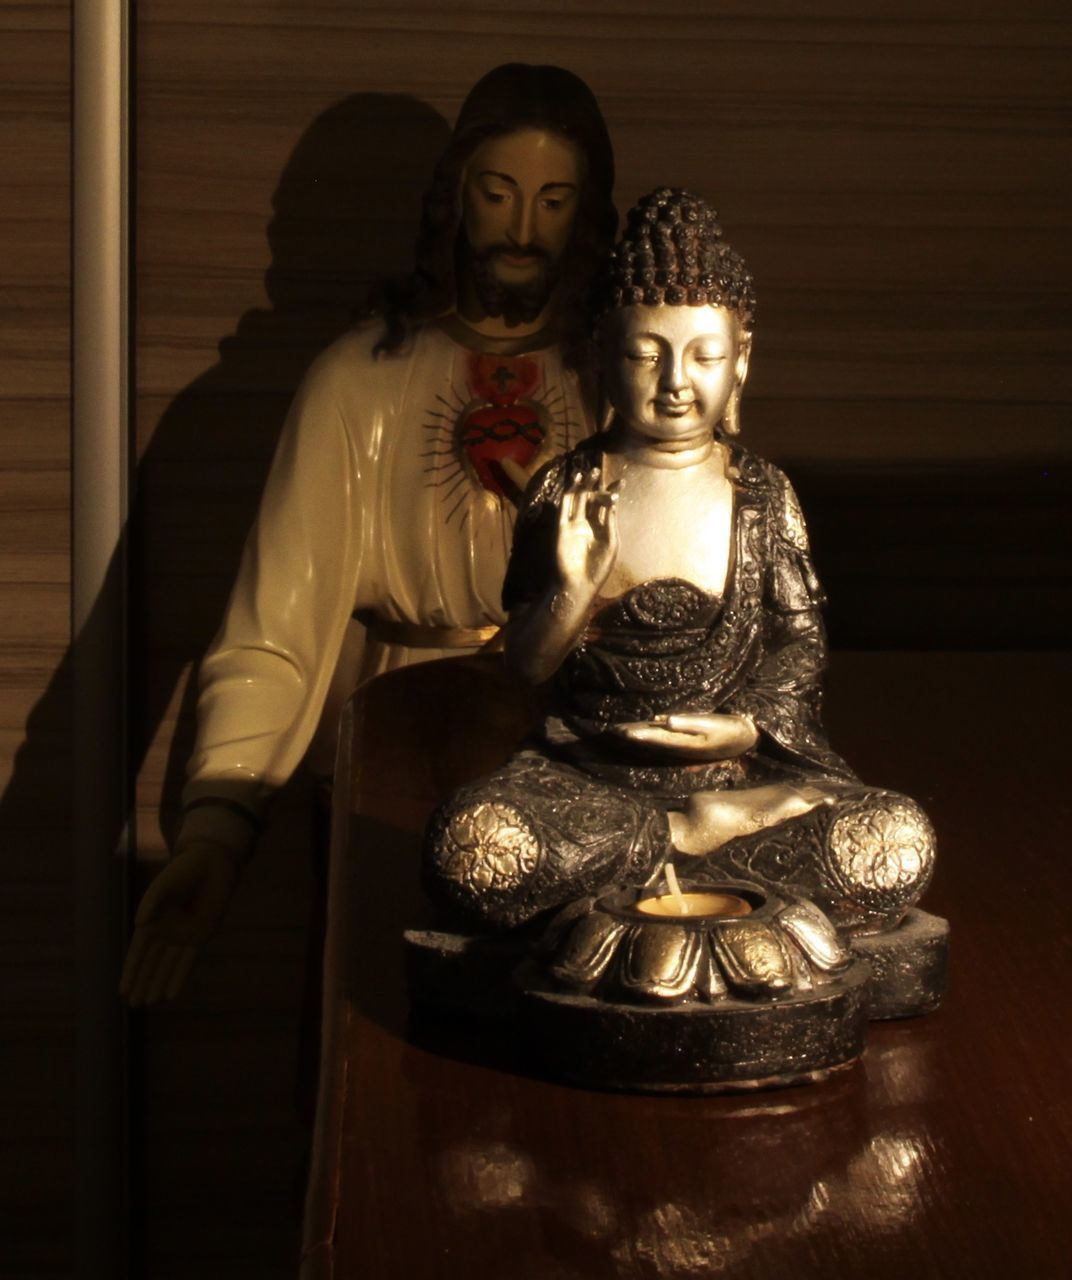 statue, religion, spirituality, sculpture, human representation, male likeness, indoors, idol, place of worship, no people